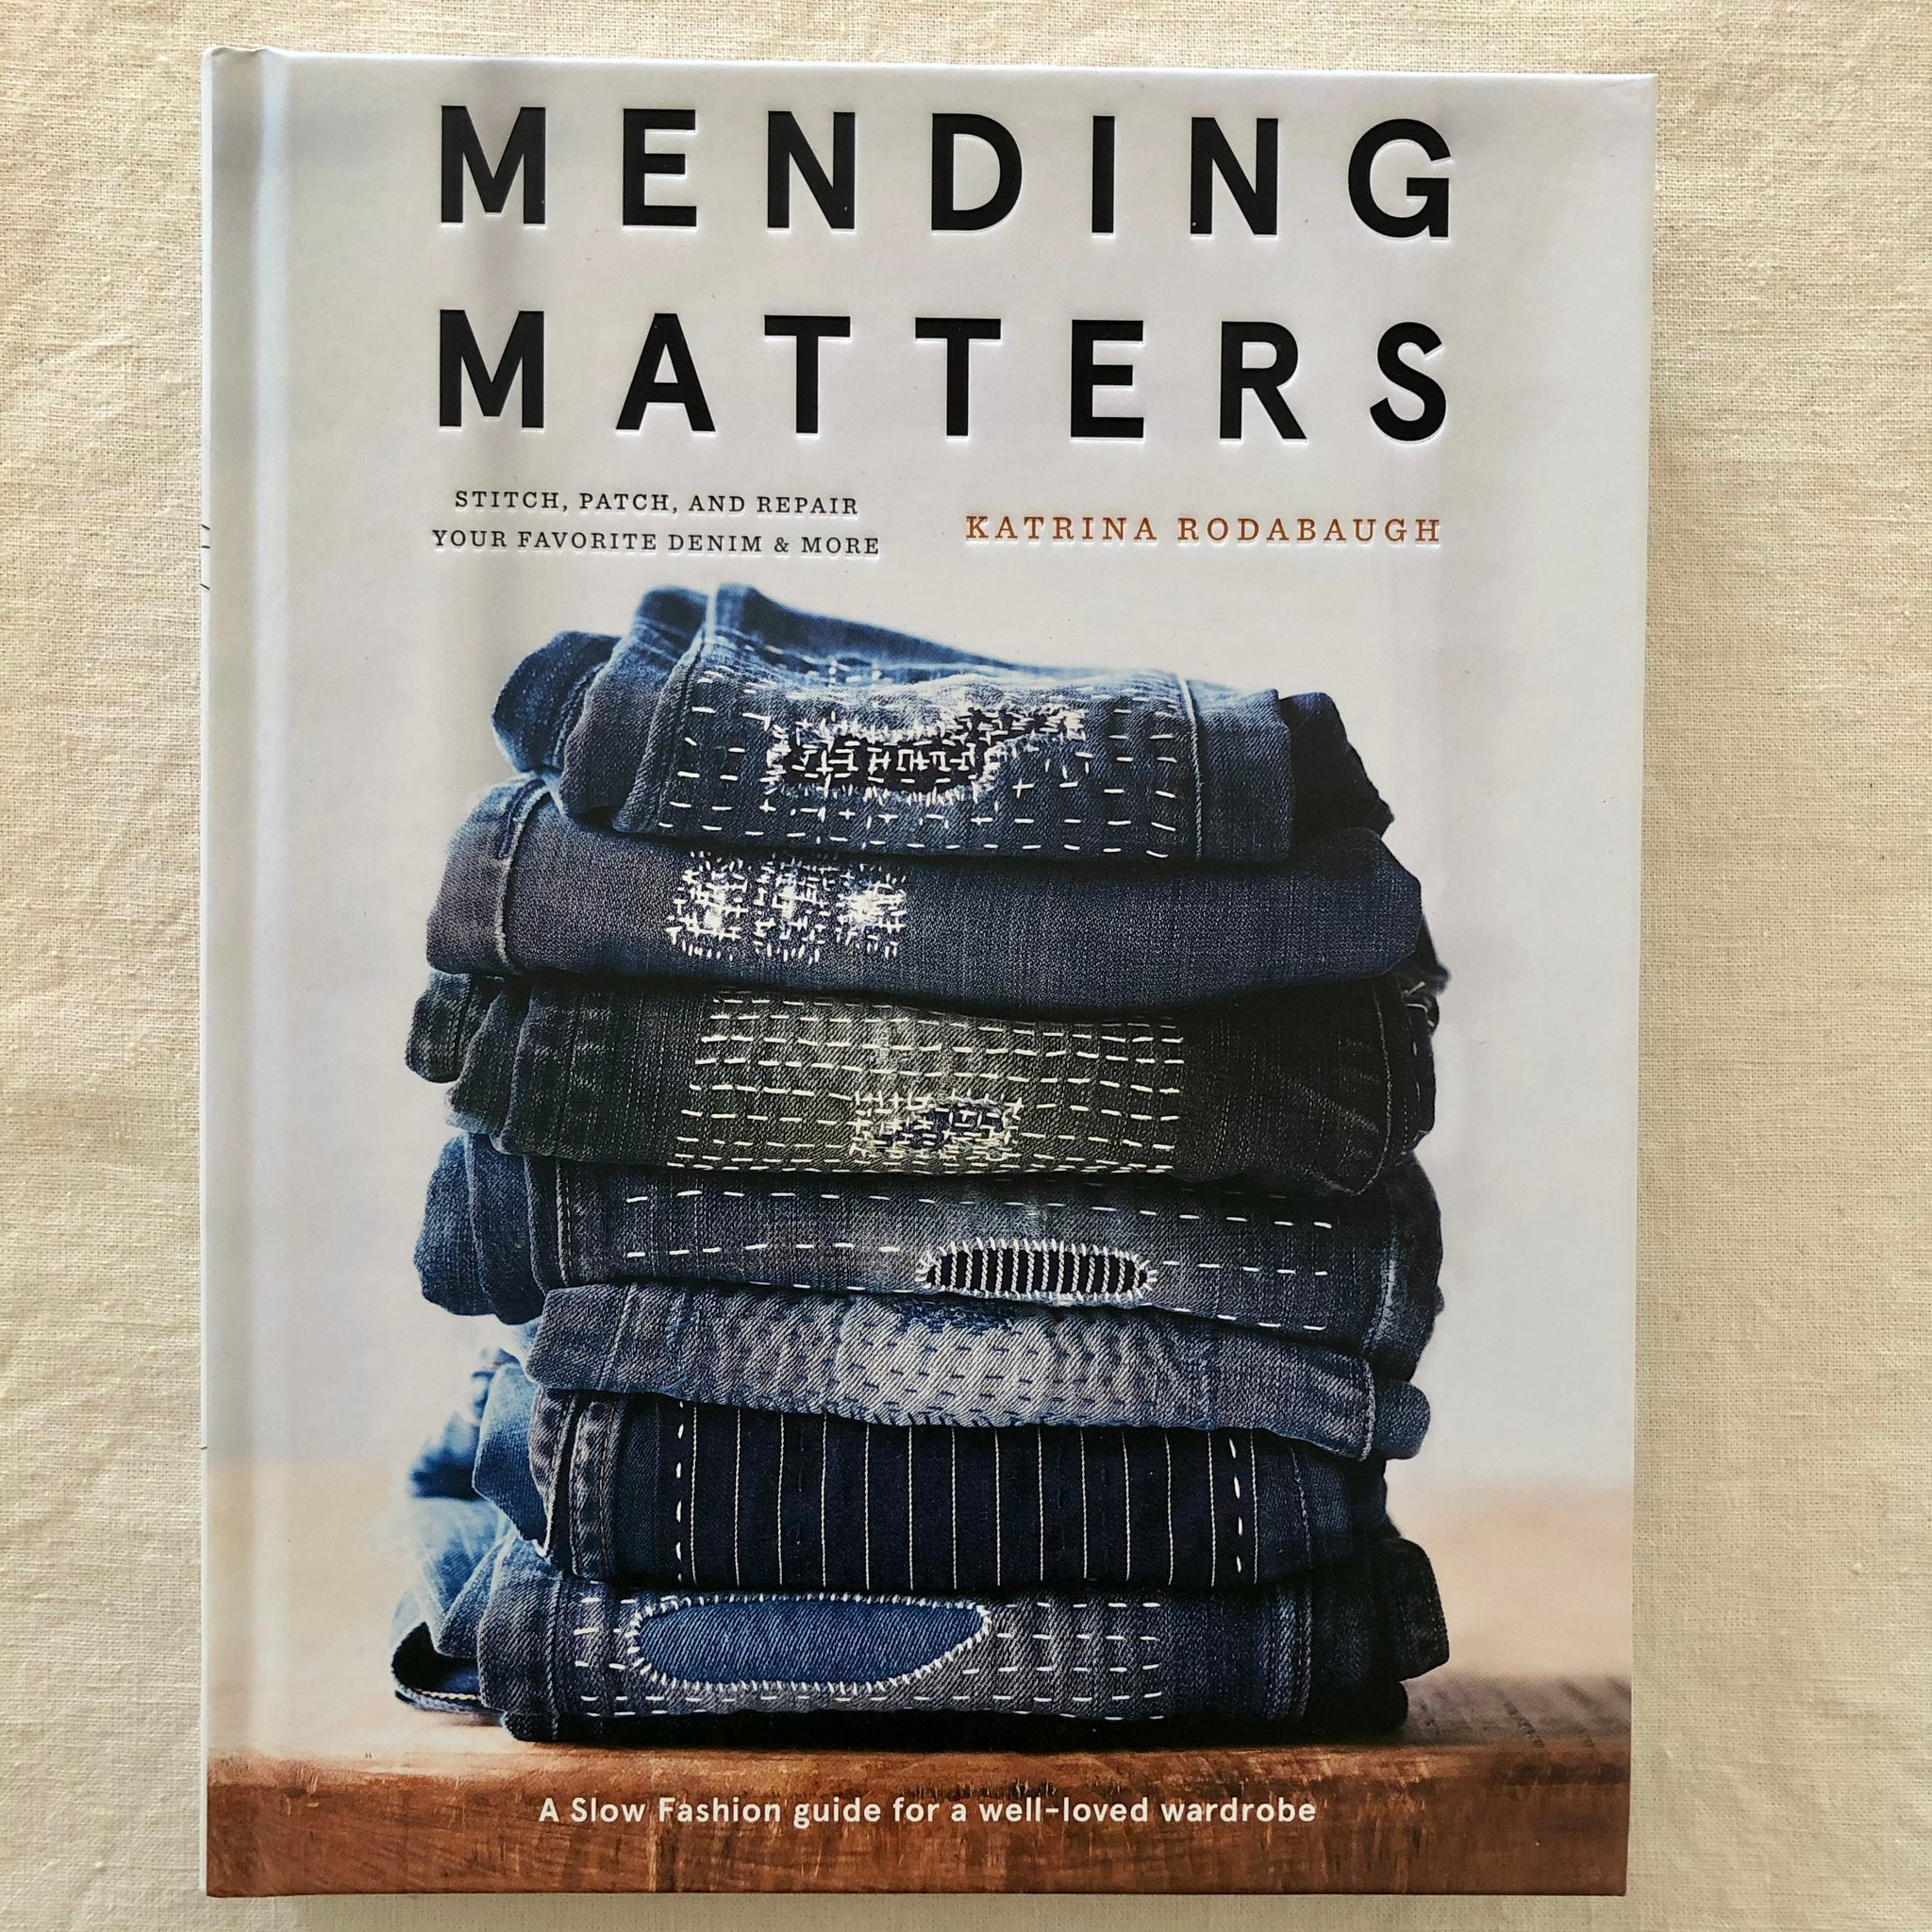 Mending Matters by Katrina Rodabaugh